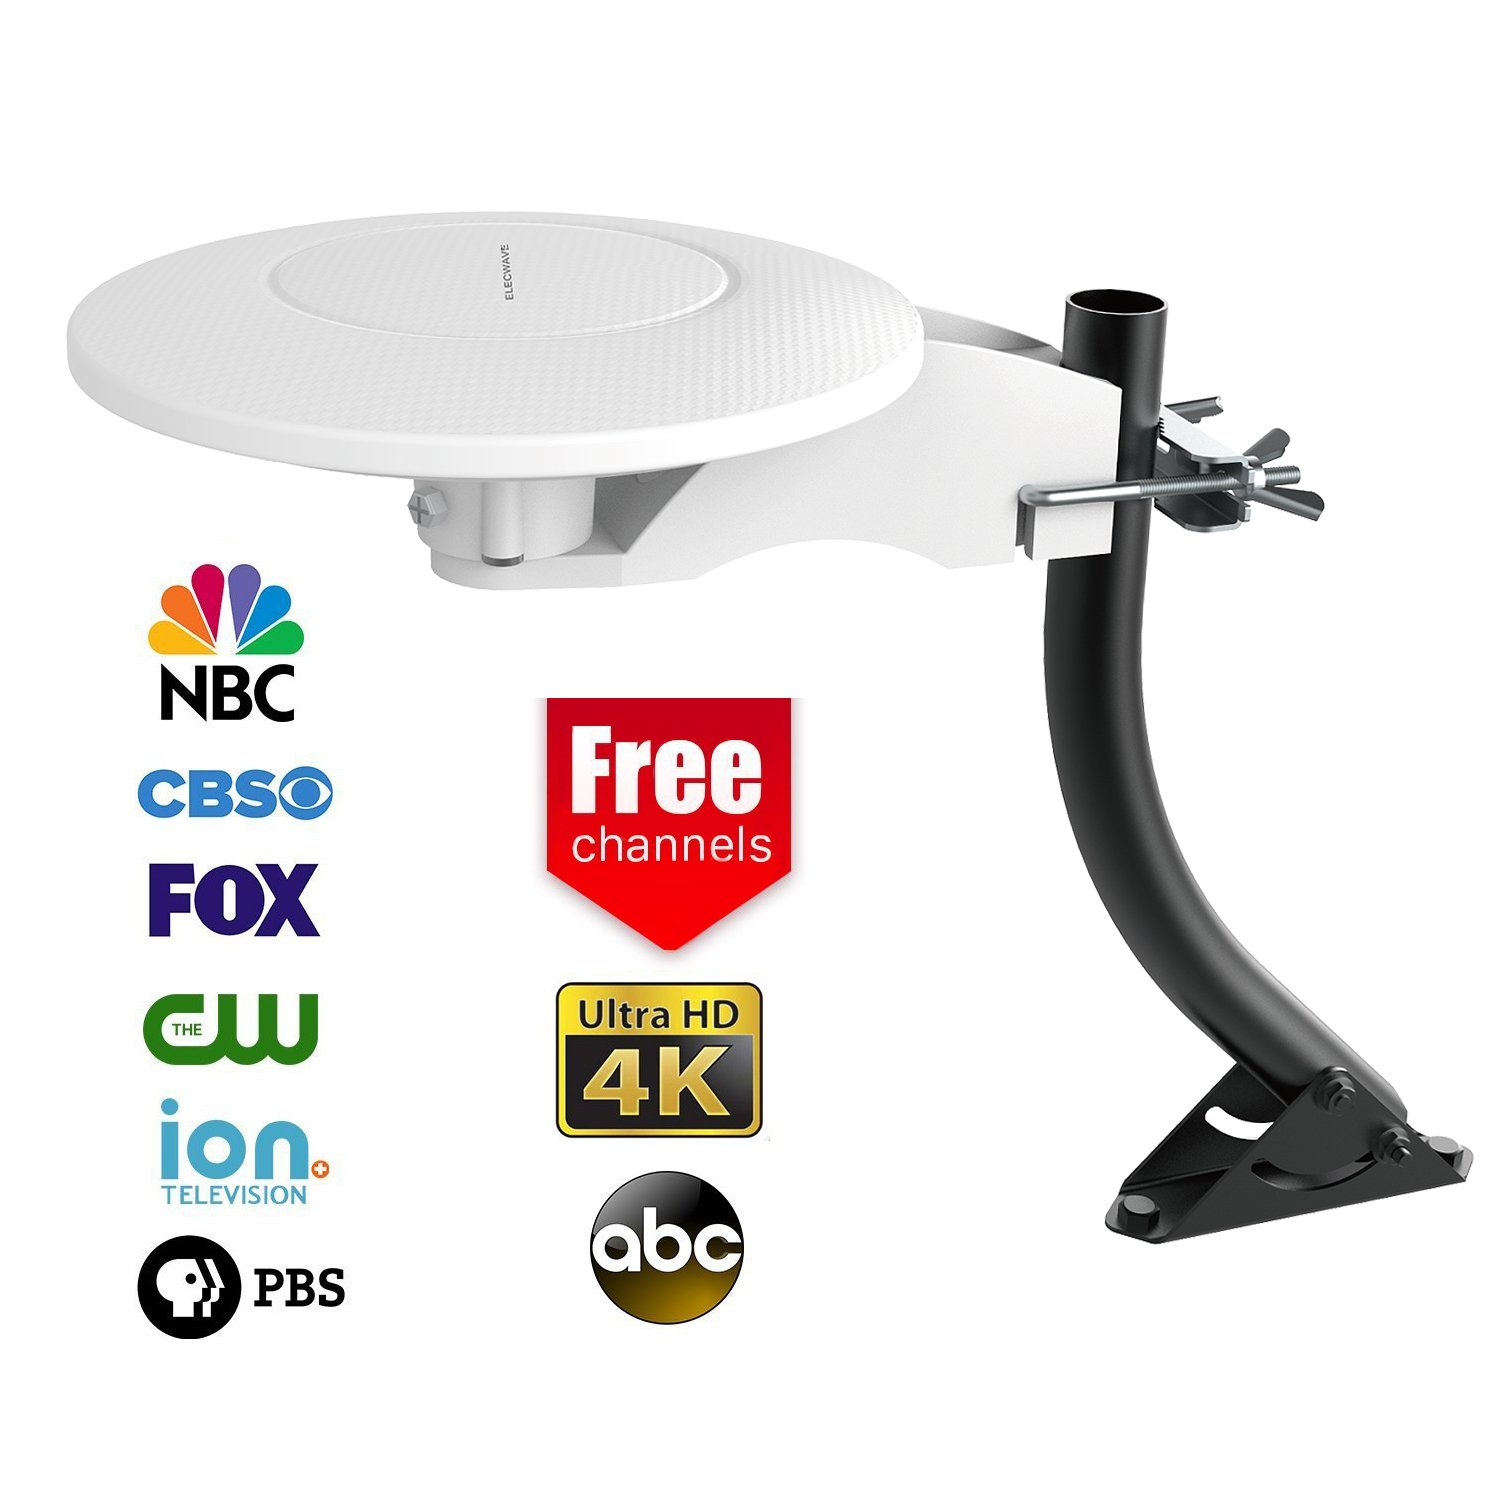 Elecwave 70 Miles Digital HDTV Antenna 360 Degree Omni-directional Reception Outdoor/Indoor Amplified Antenna with 33 FT High Performance Coax Cable, White